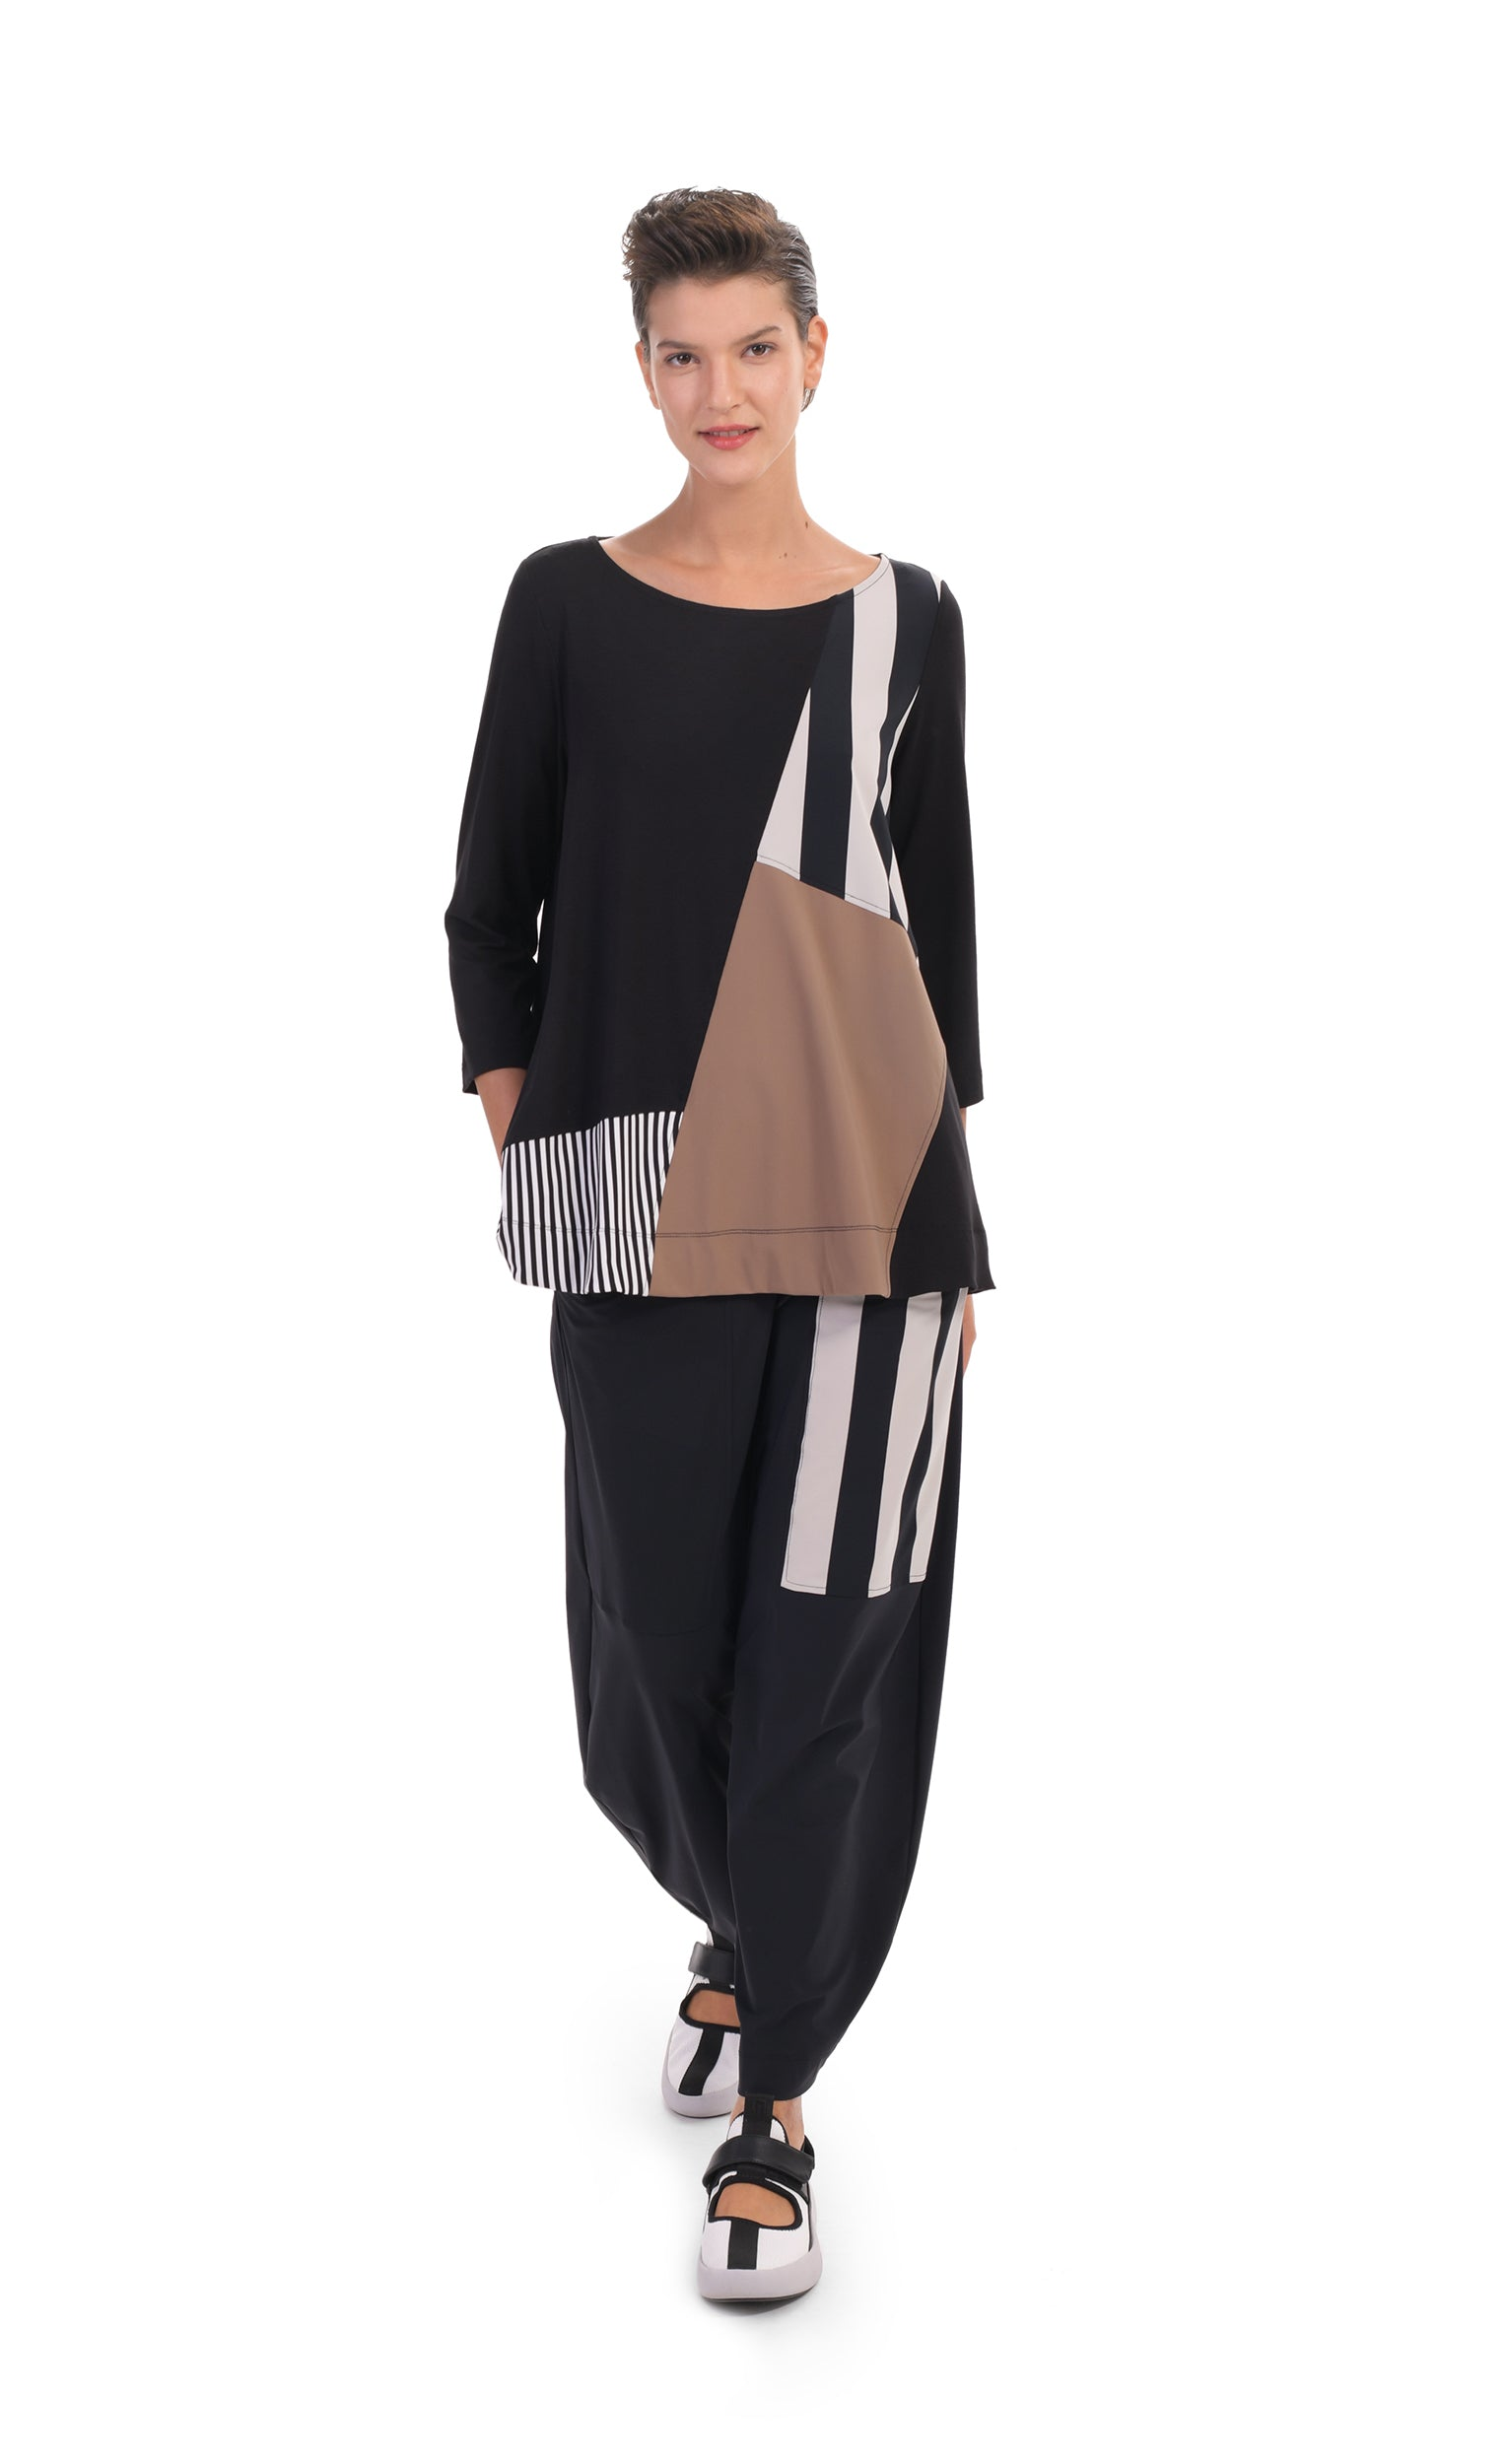 Front full body view of a woman wearing the alembika tekbika mixed print top. This top has 3/4 length sleeves and blocking of black and white stripes and mocha colored patches. On the bottom she is wearing a wide leg pant with a black and white striped patch.